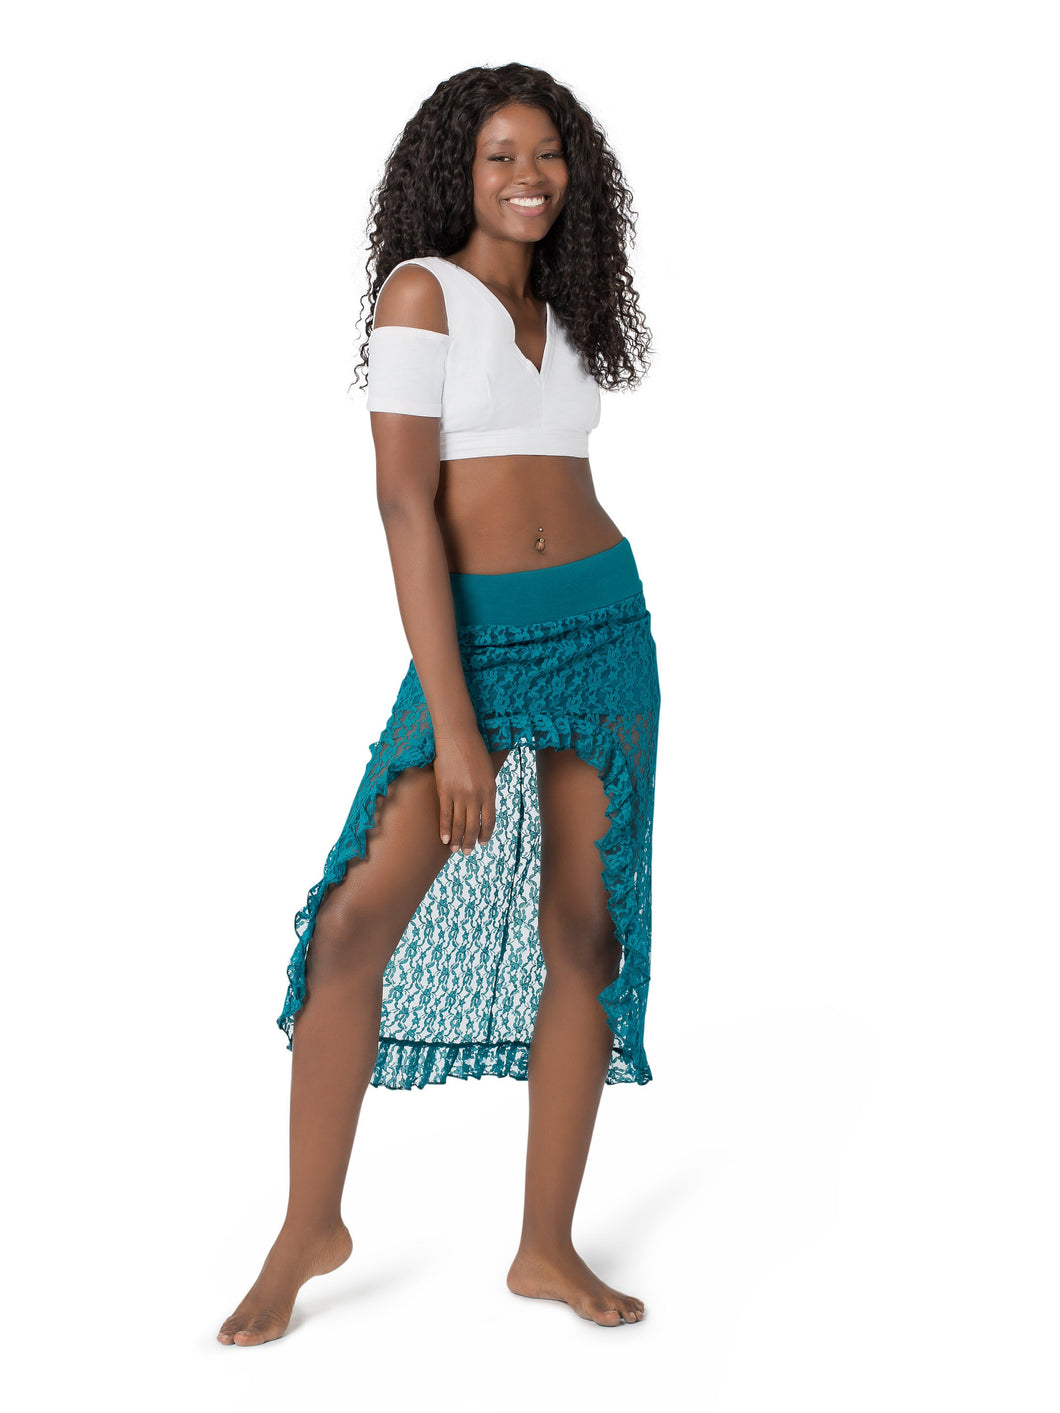 Unique Lace Skirt for Women | Mini Maxi Bellydance Asymmetrical Skirt | Gypsystyle Clothing for Burning Man Festivals, Tribal Fusion Dance